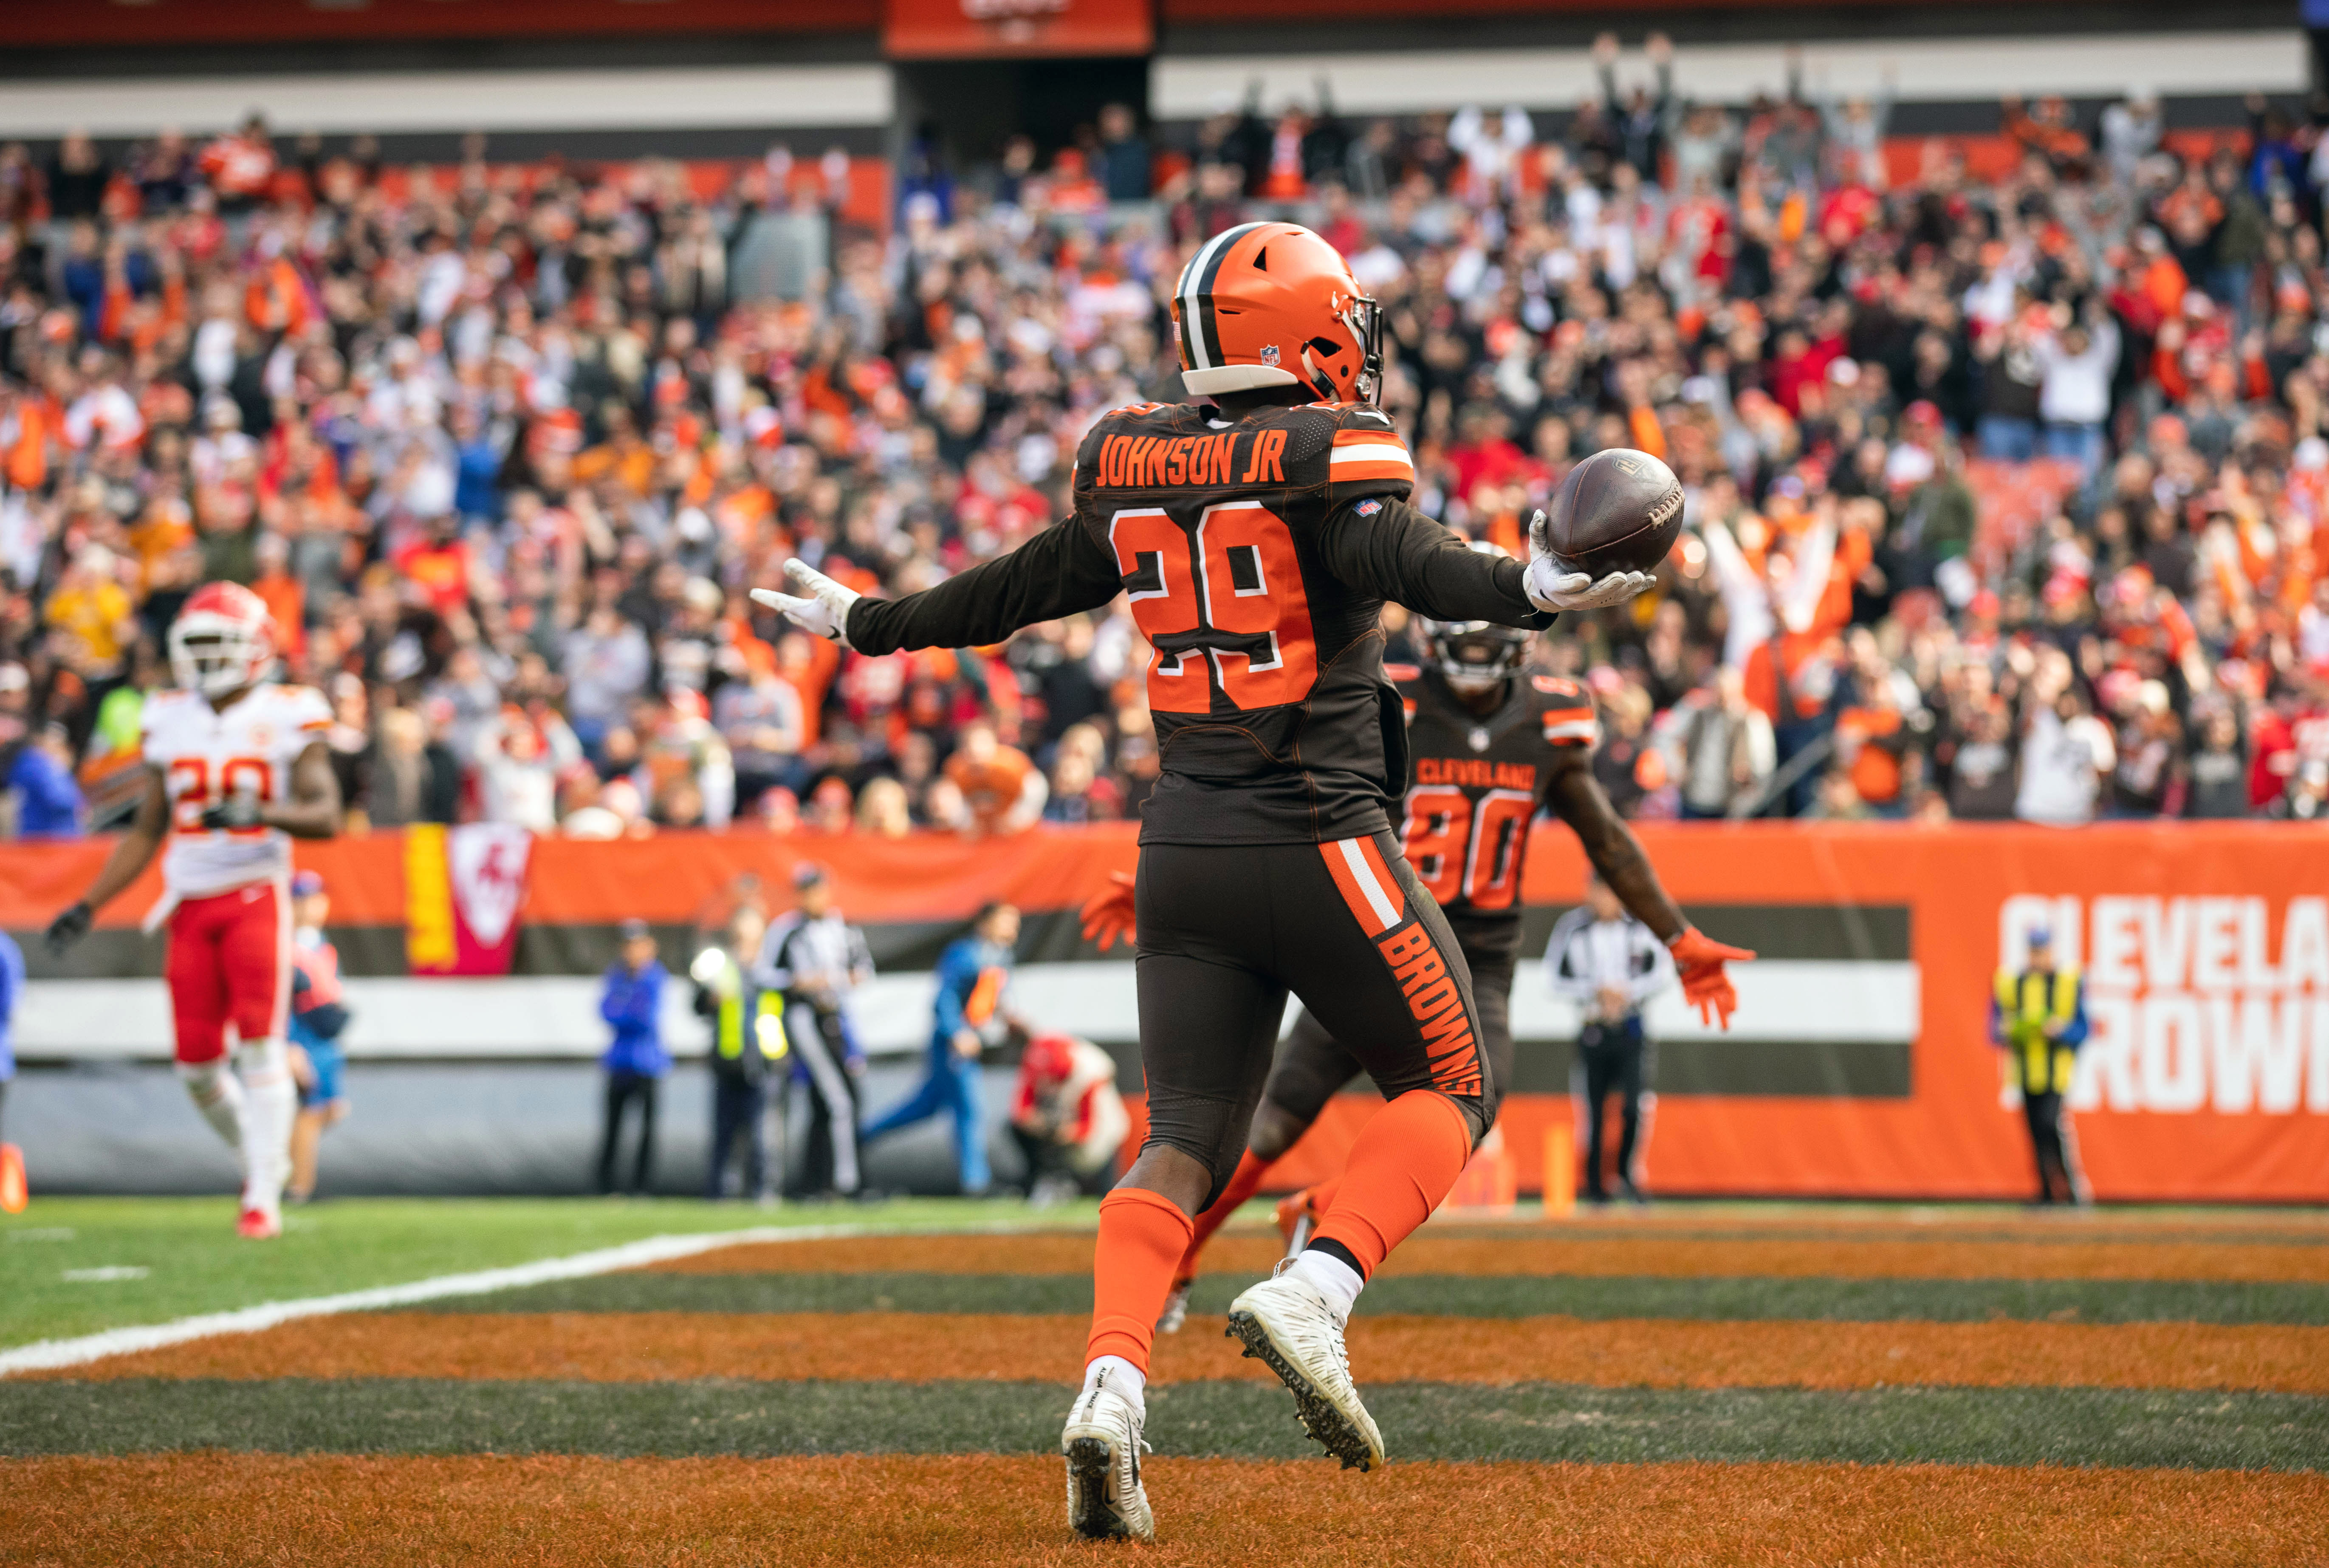 The Browns offense looked a lot better without Hue Jackson and Todd Haley